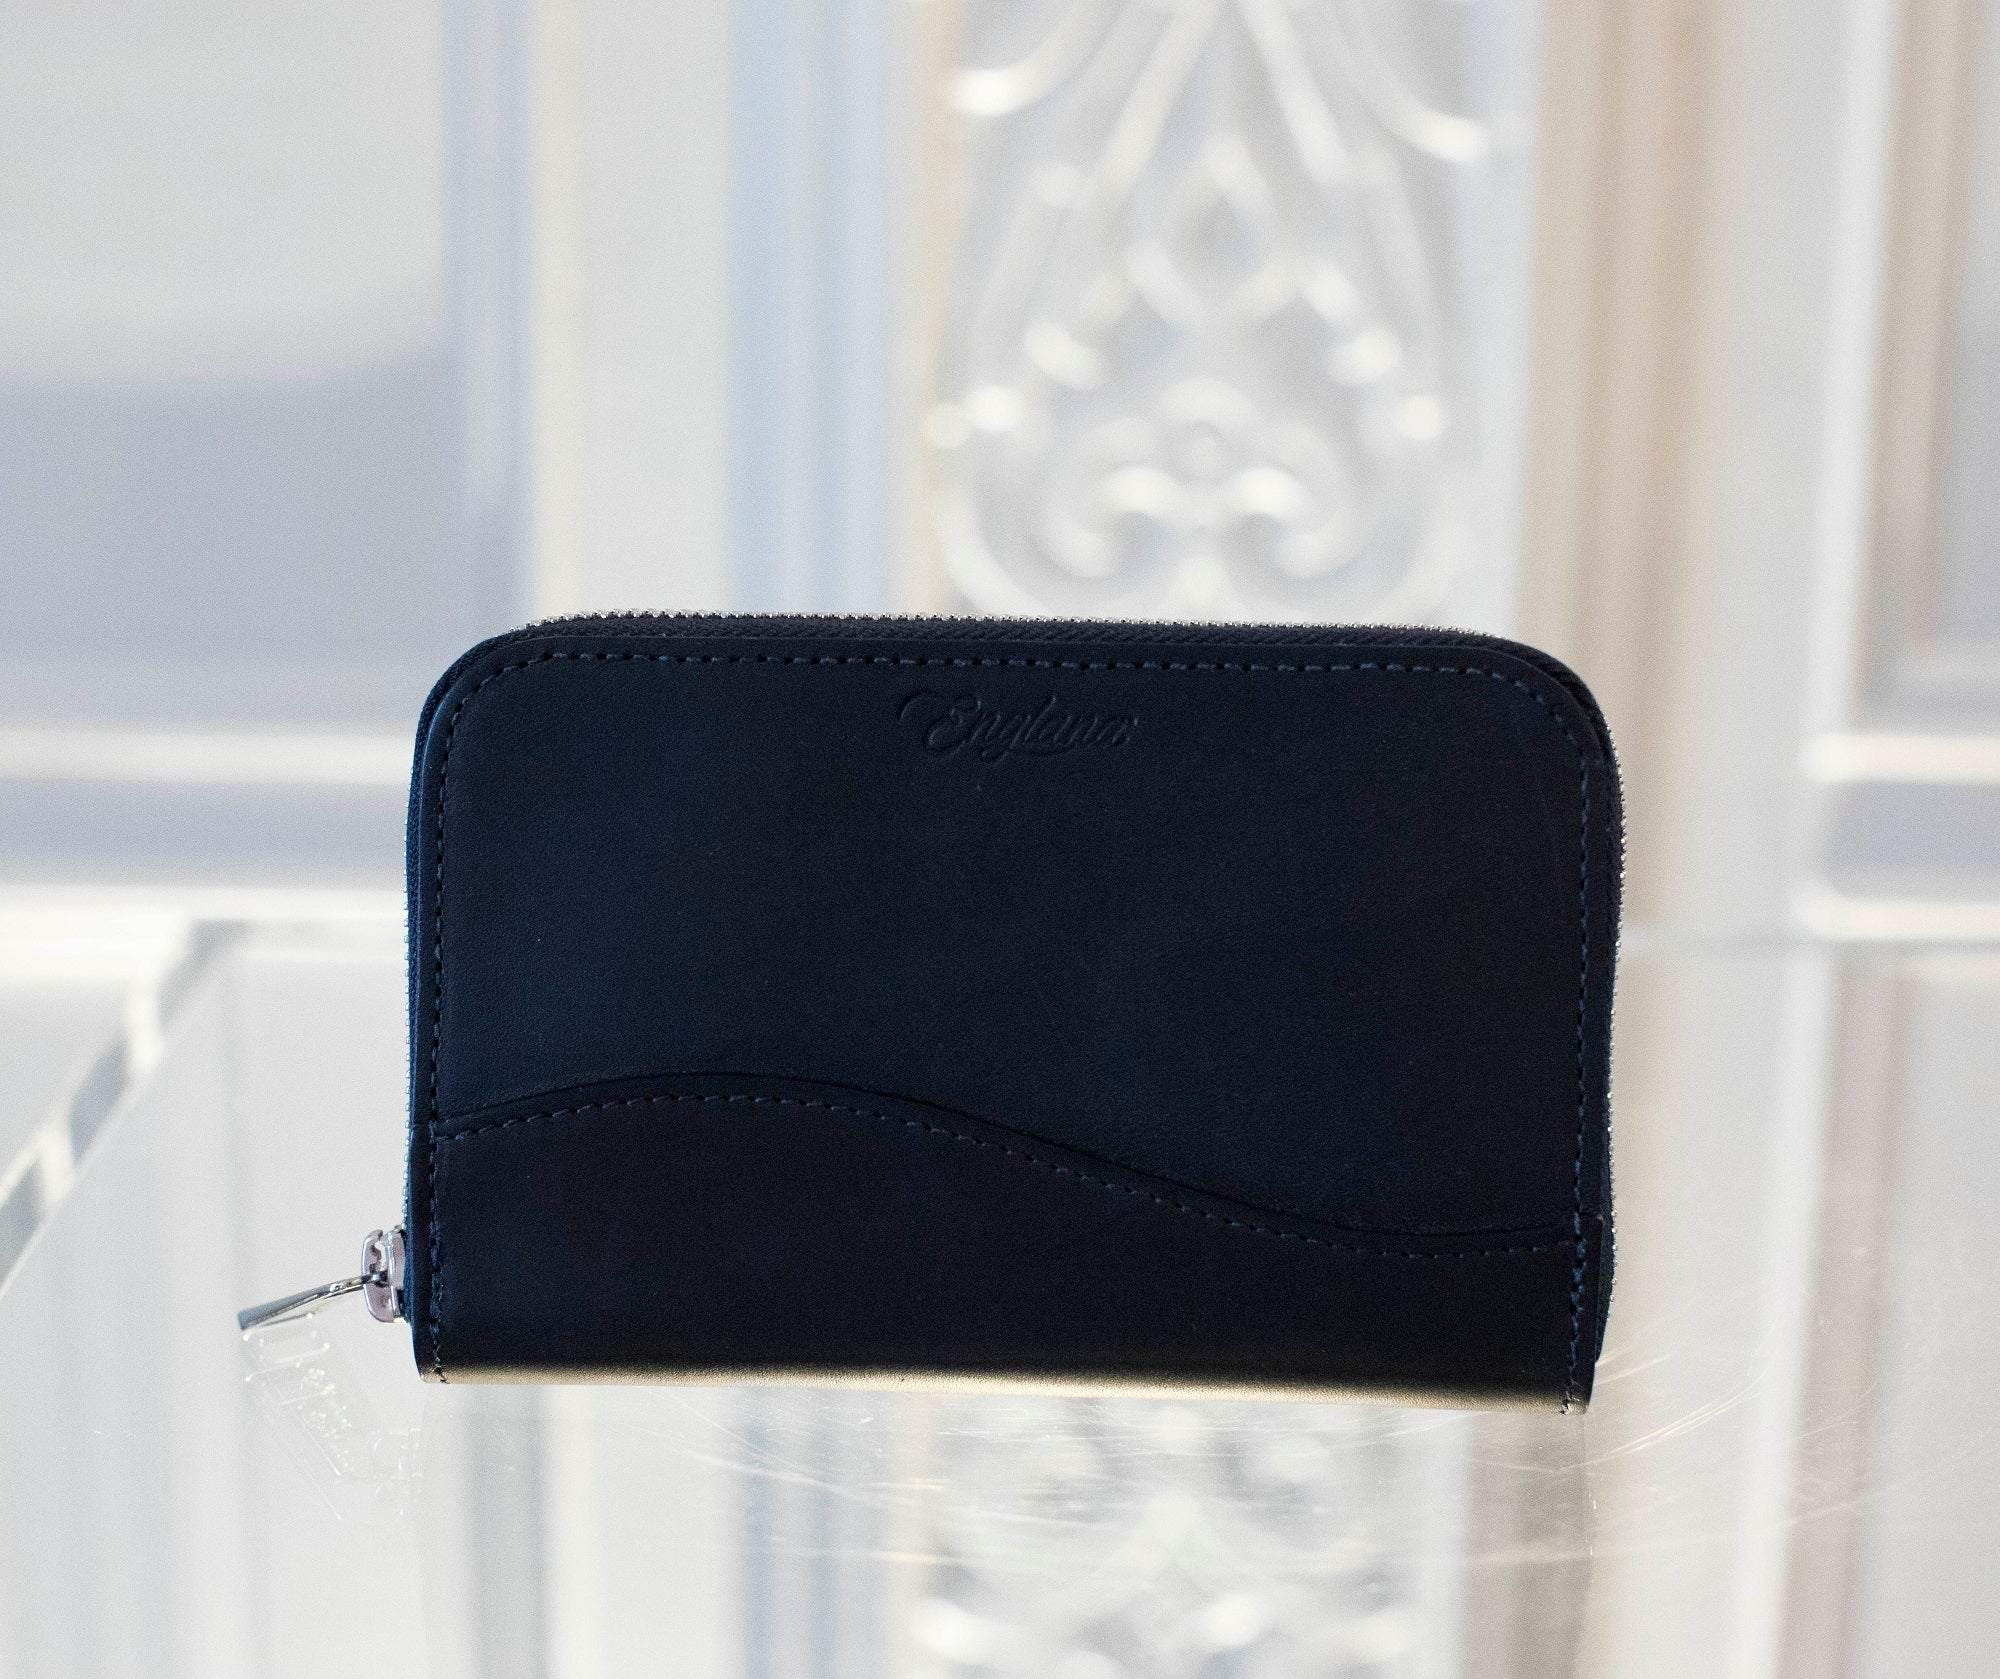 The Harry - English Black Purse